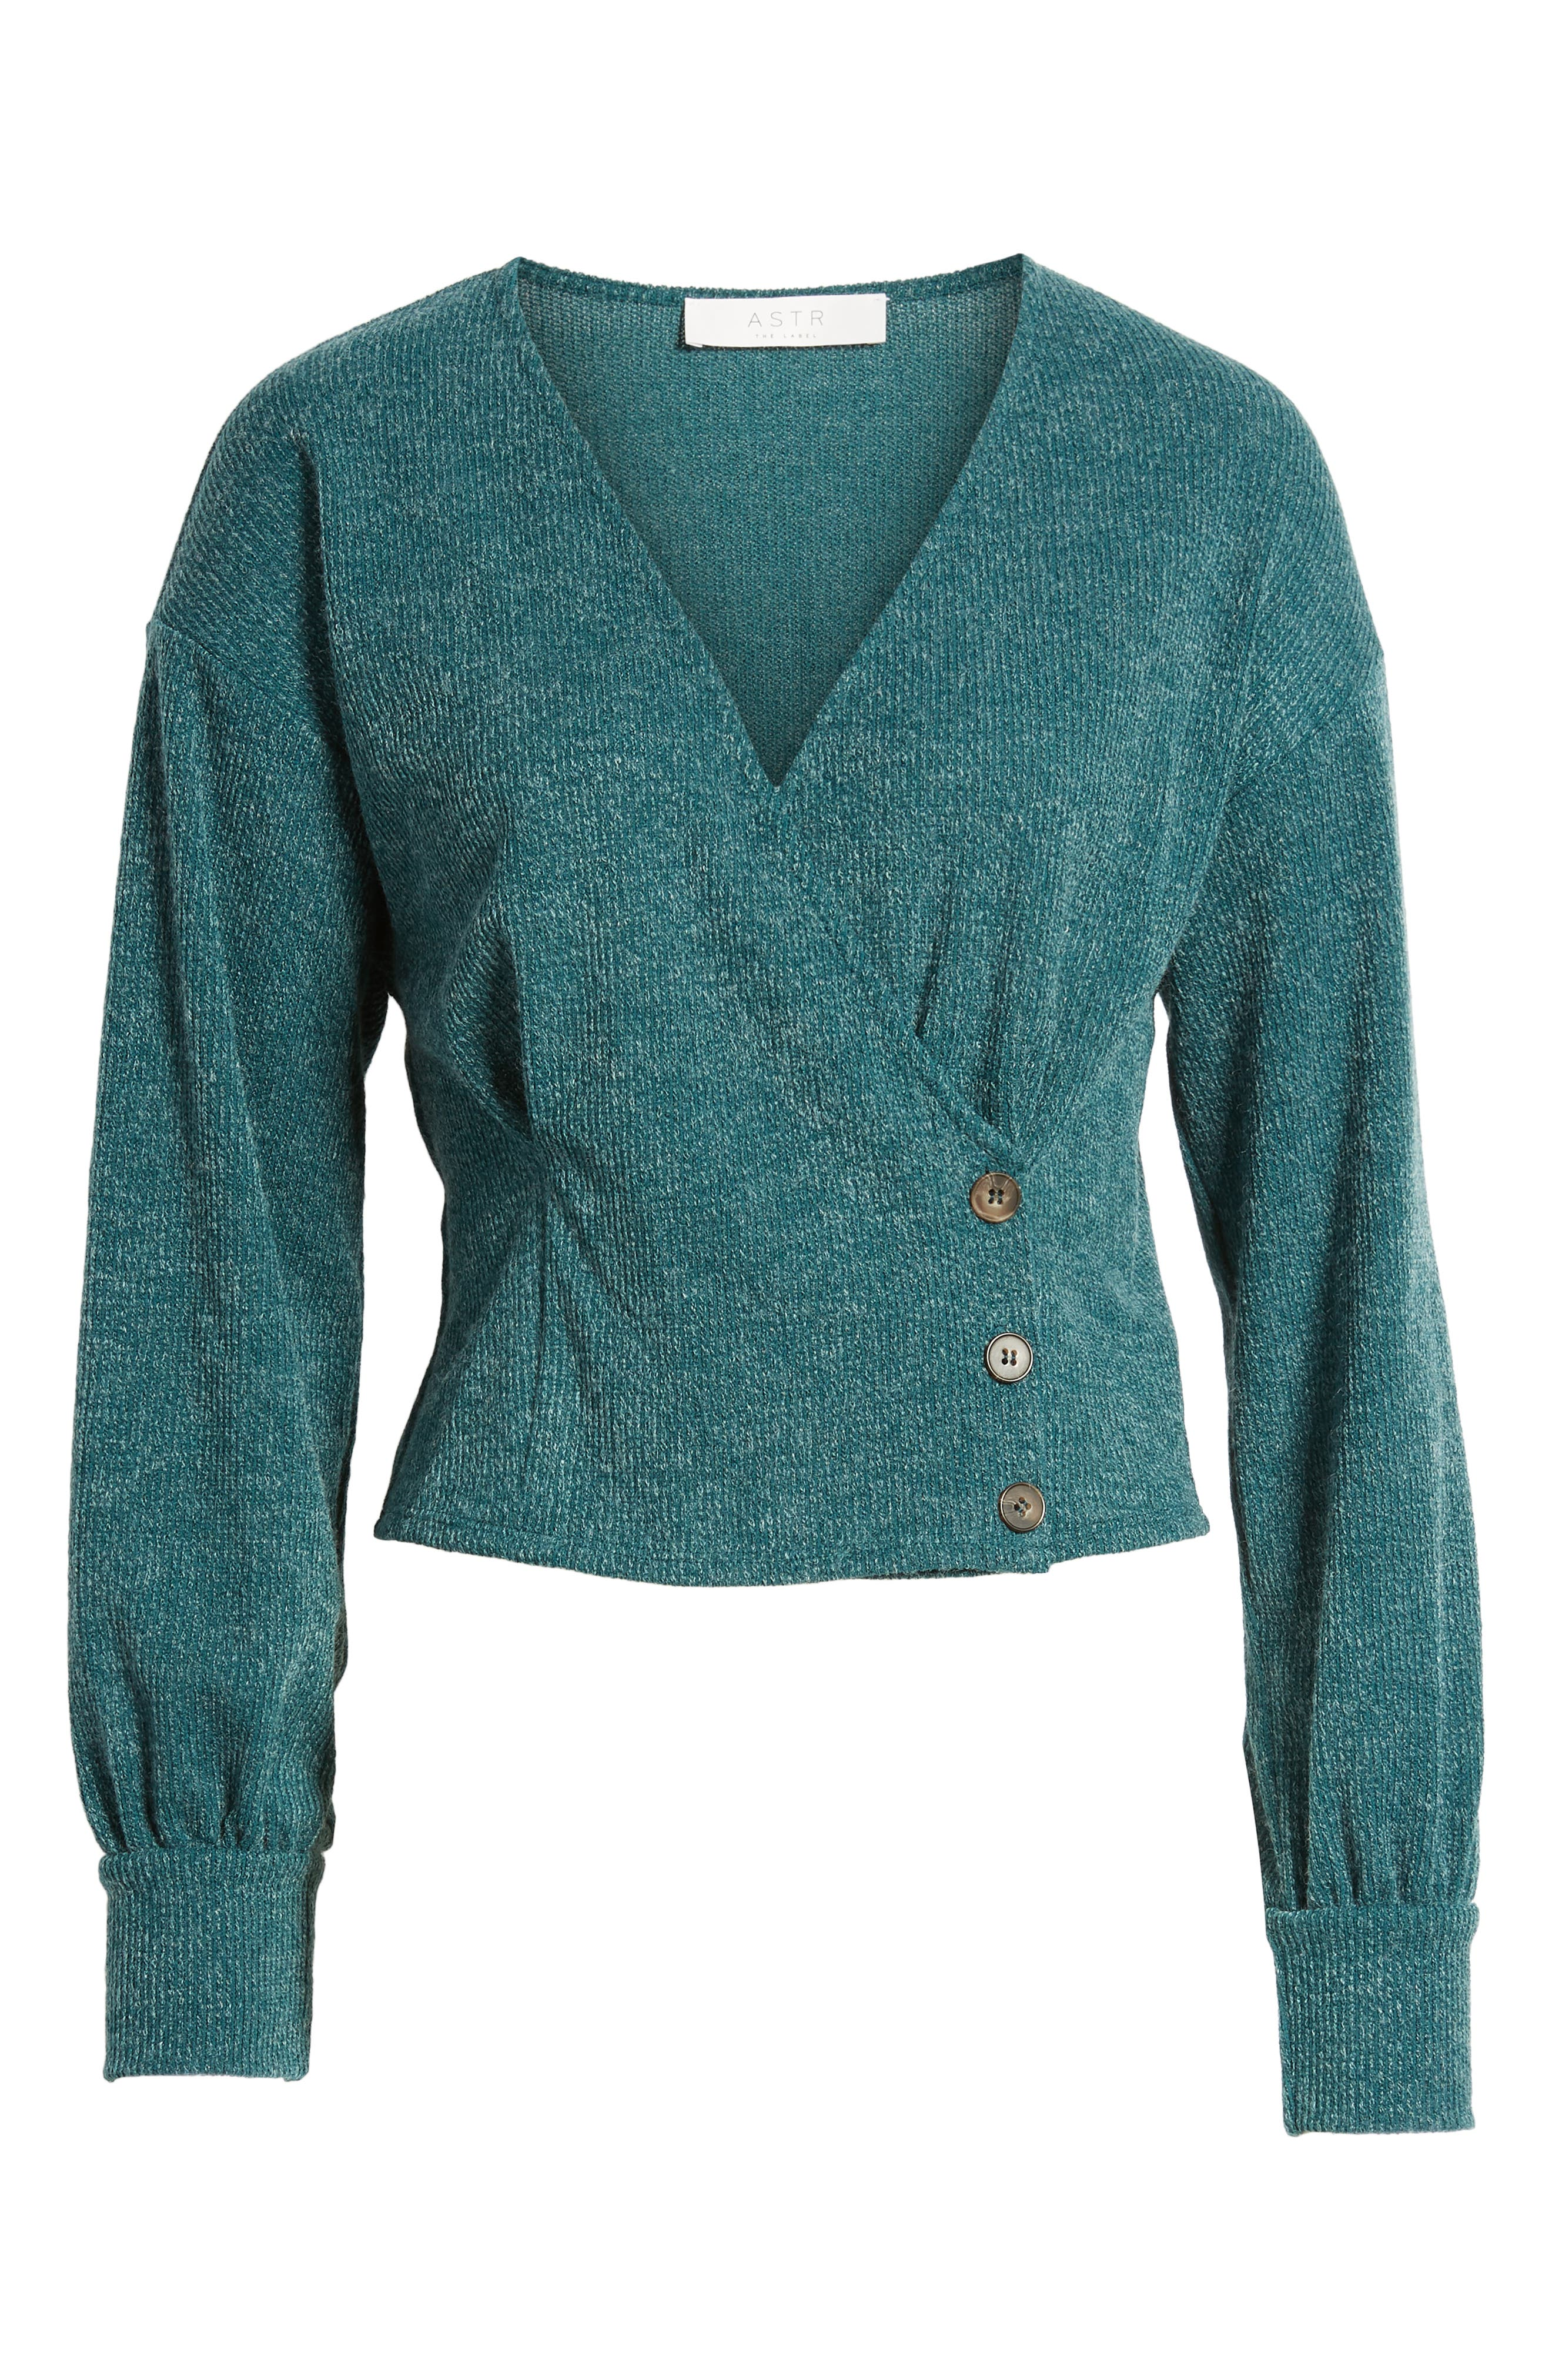 Wrap Sweater,                             Alternate thumbnail 6, color,                             TEAL